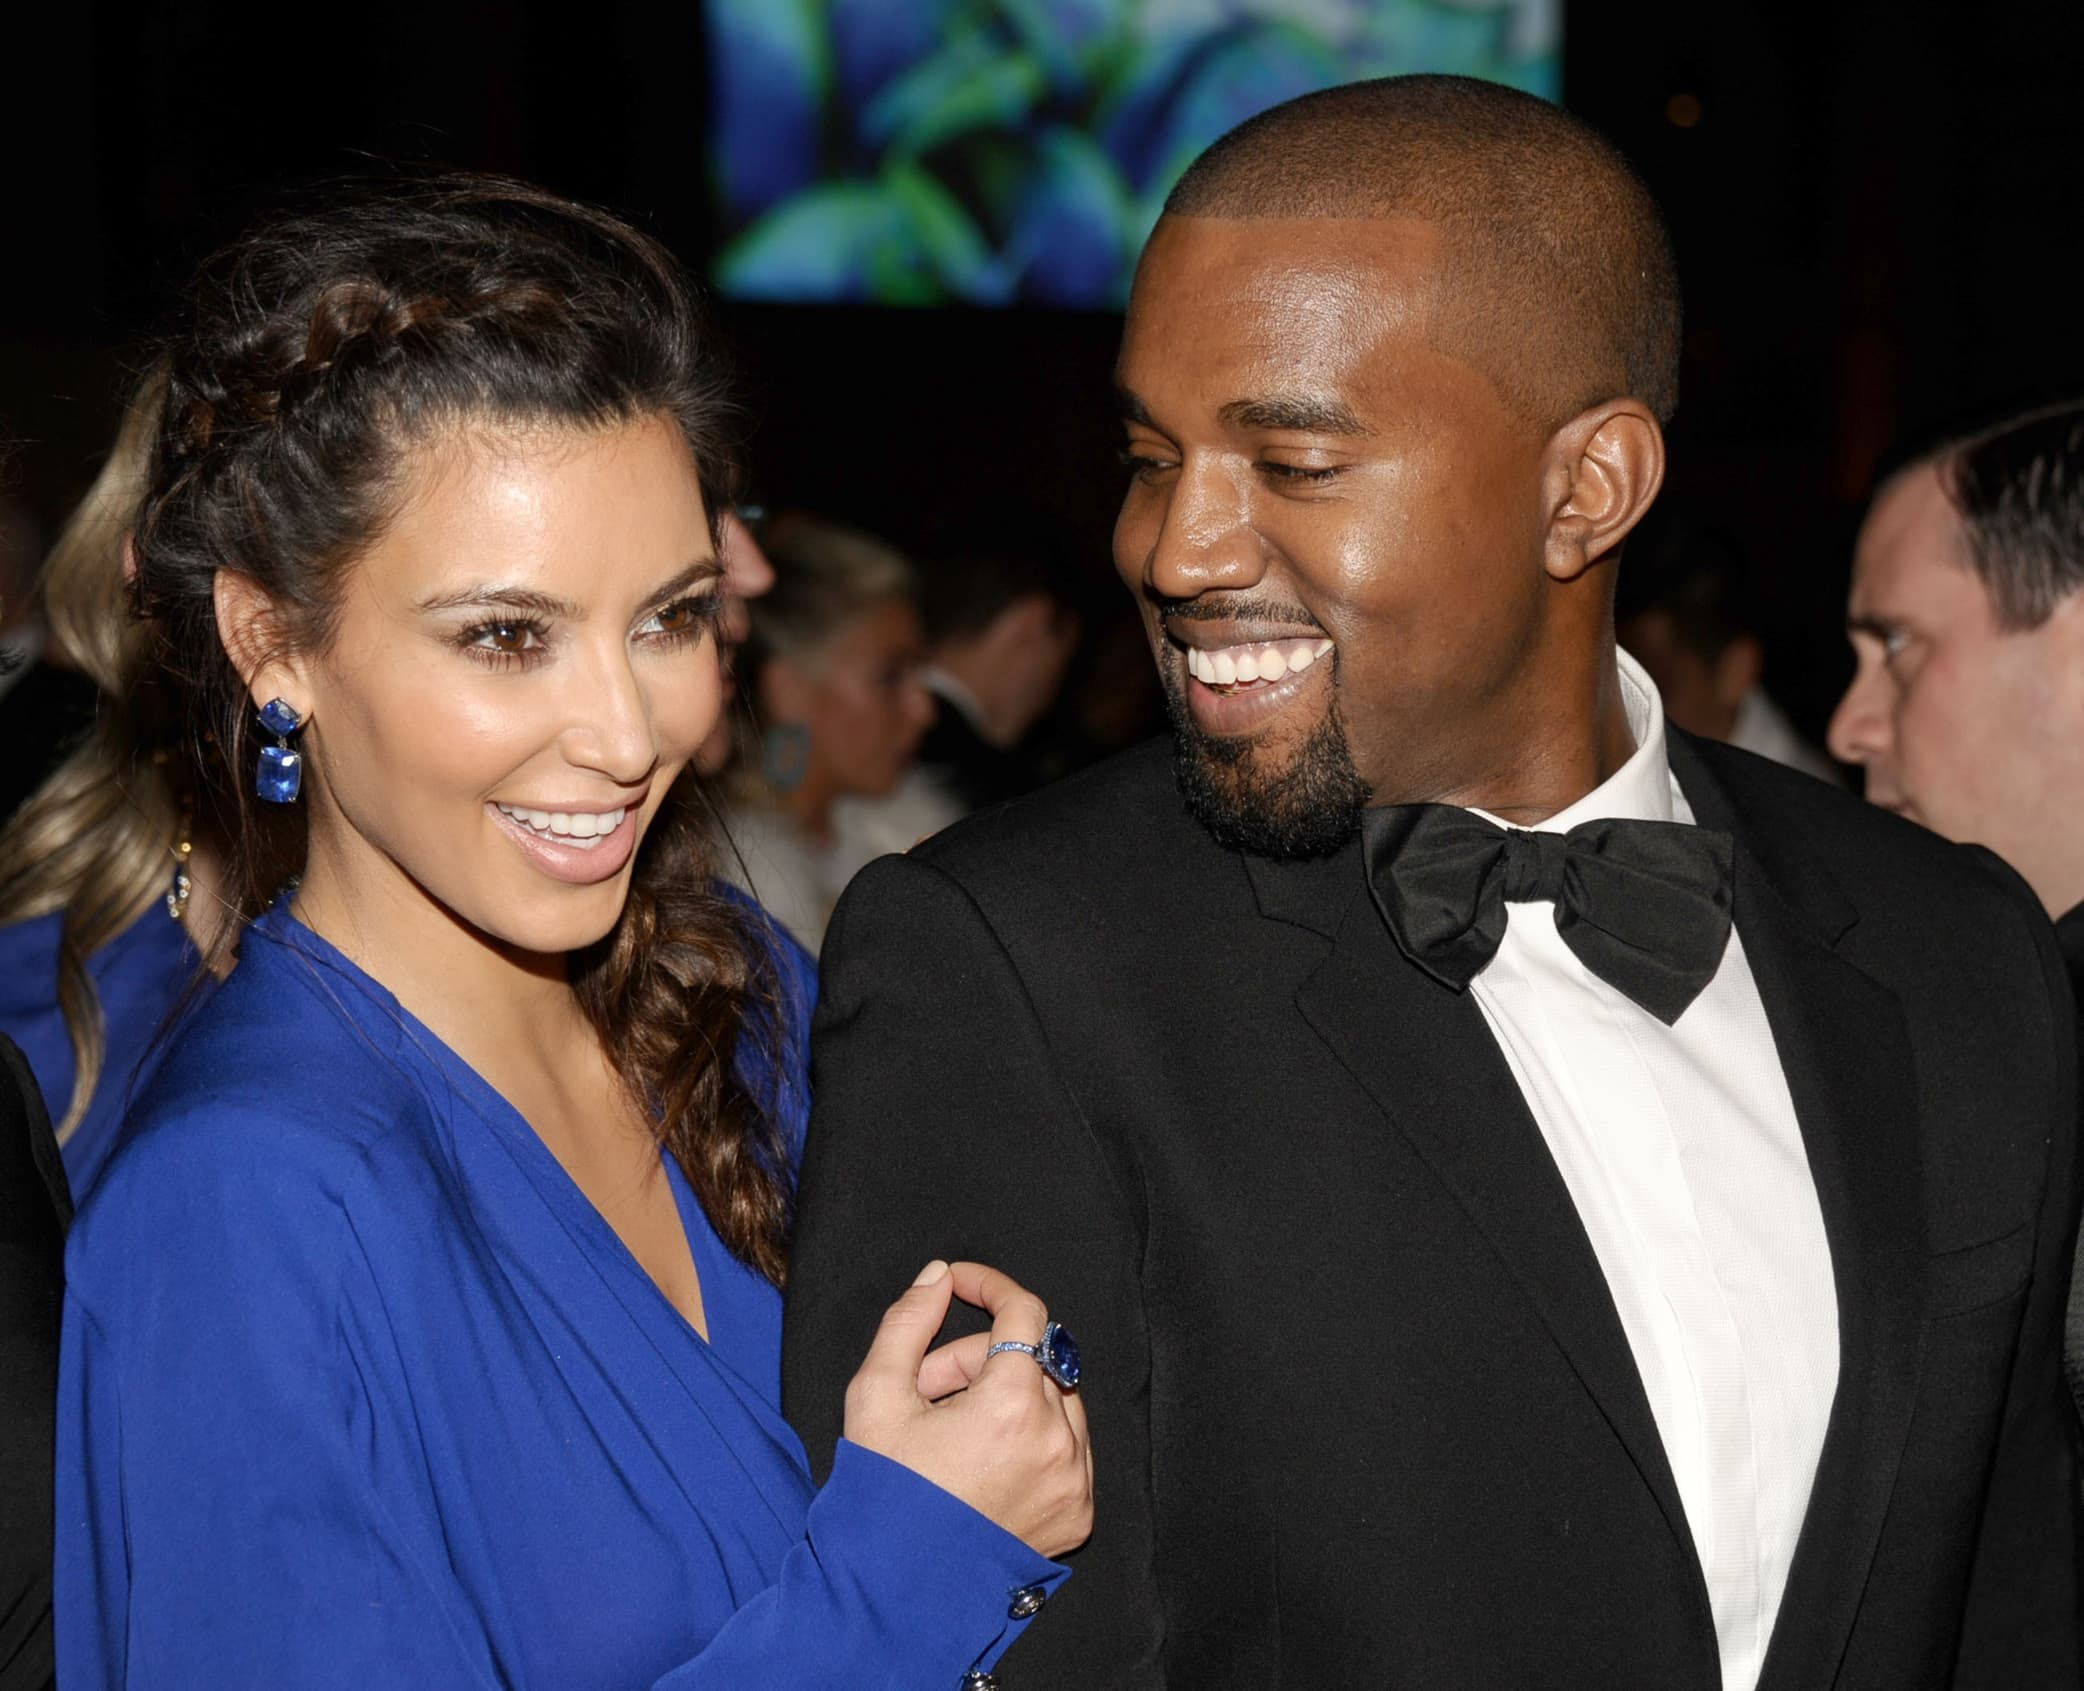 """Kim Kardashian and Kanye West started dating soon after he professed his love for her in 2012 with his song """"Cold"""""""